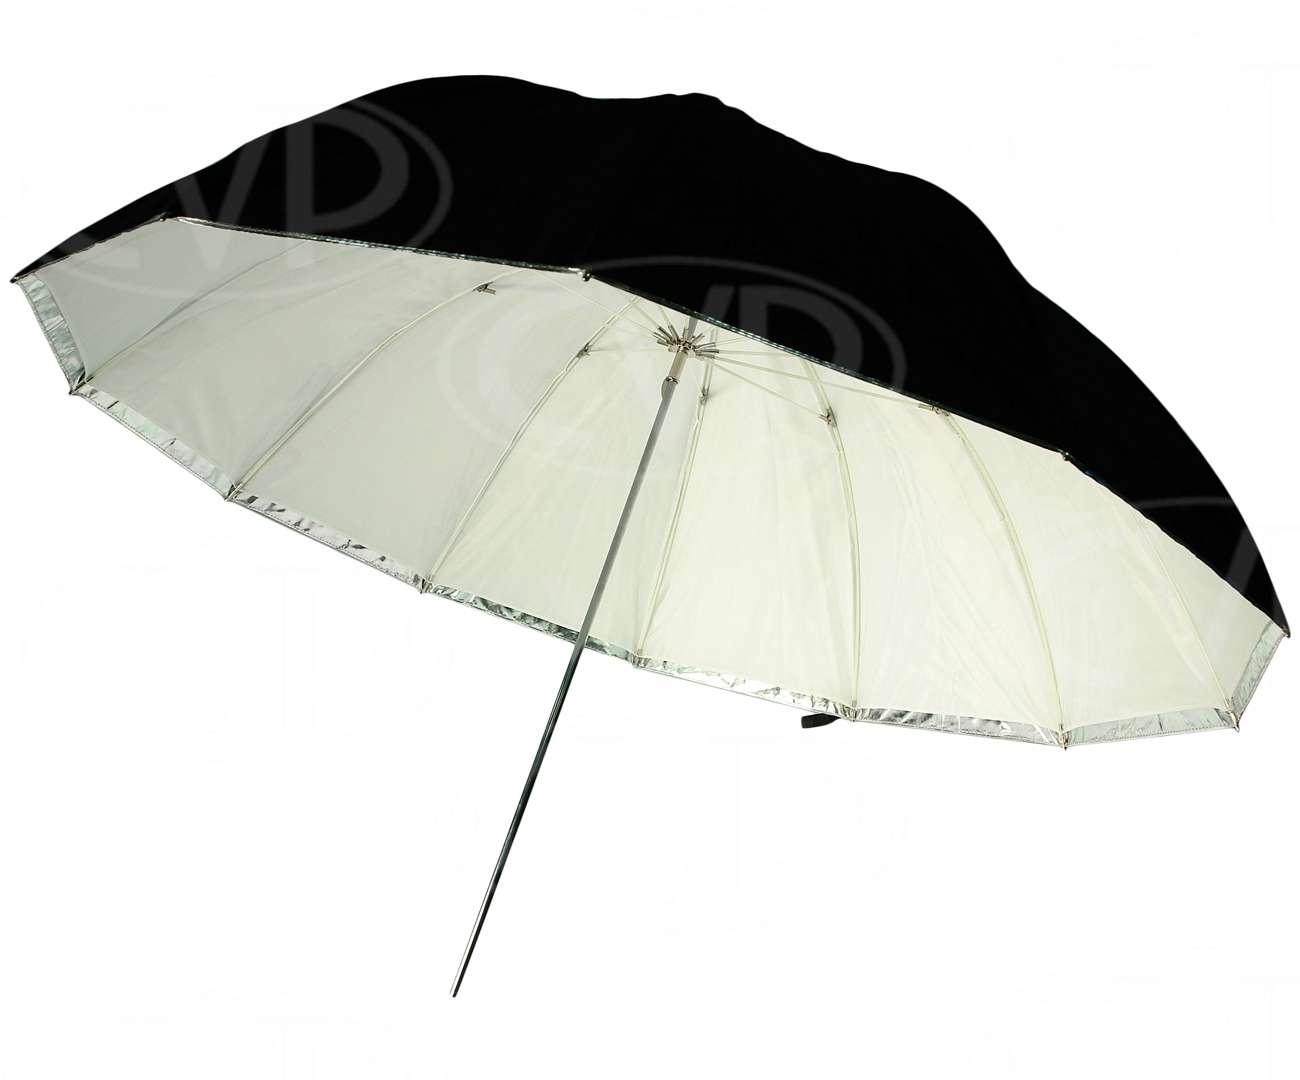 Gekko 48-inch 5-in-1 Black/Silver and Translucent Jumbo Umbrella Kit (GRU-02)